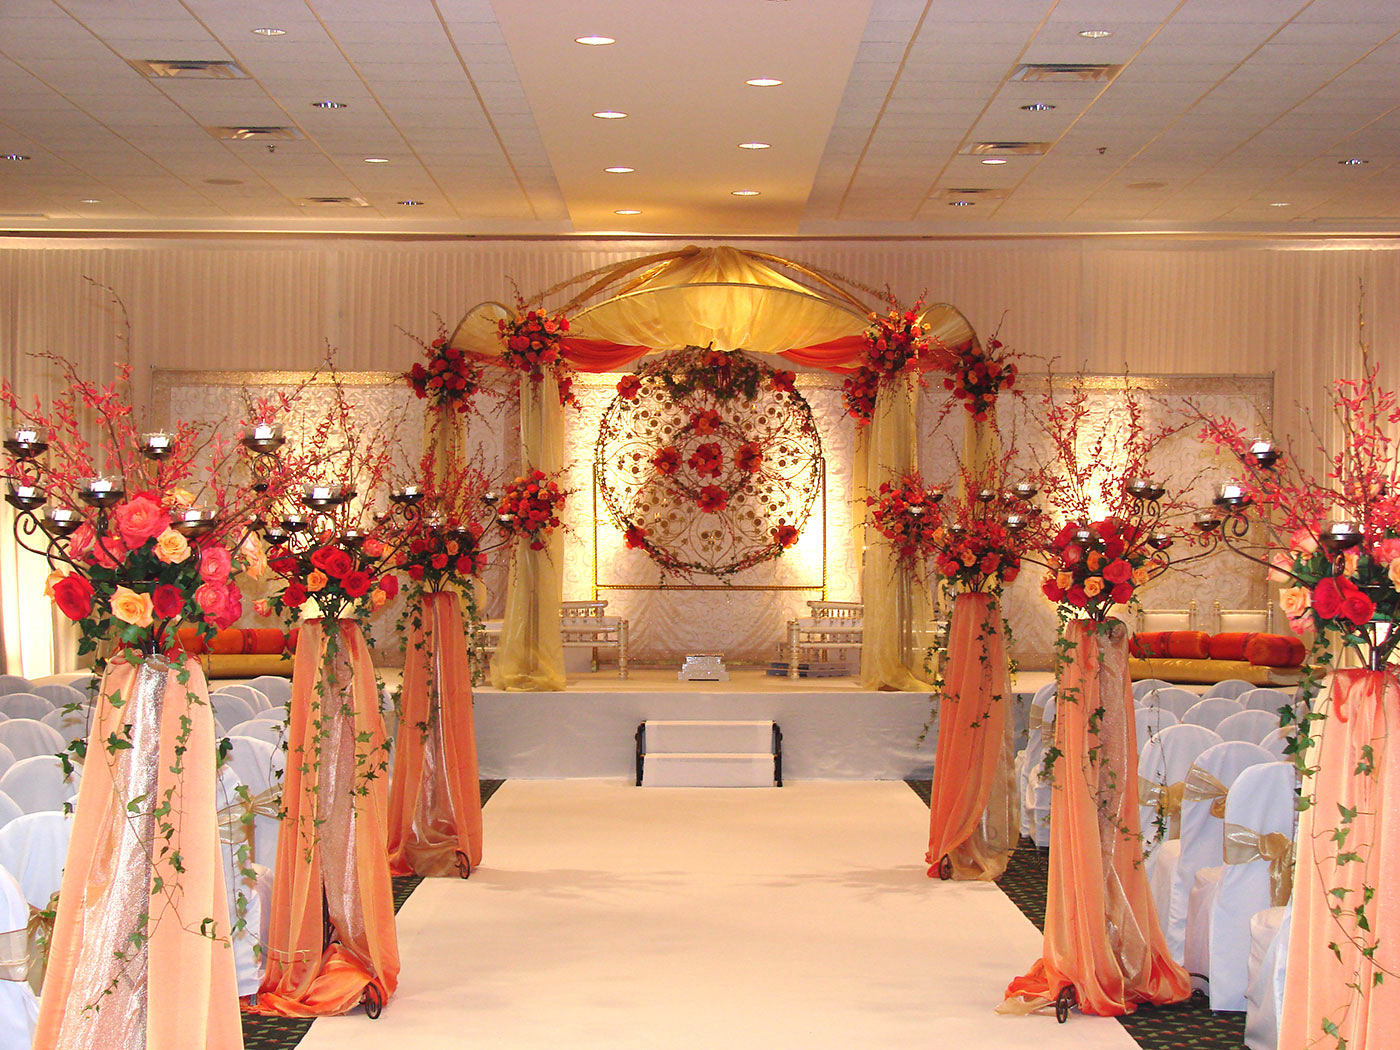 Setup of ethnic wedding ceremony